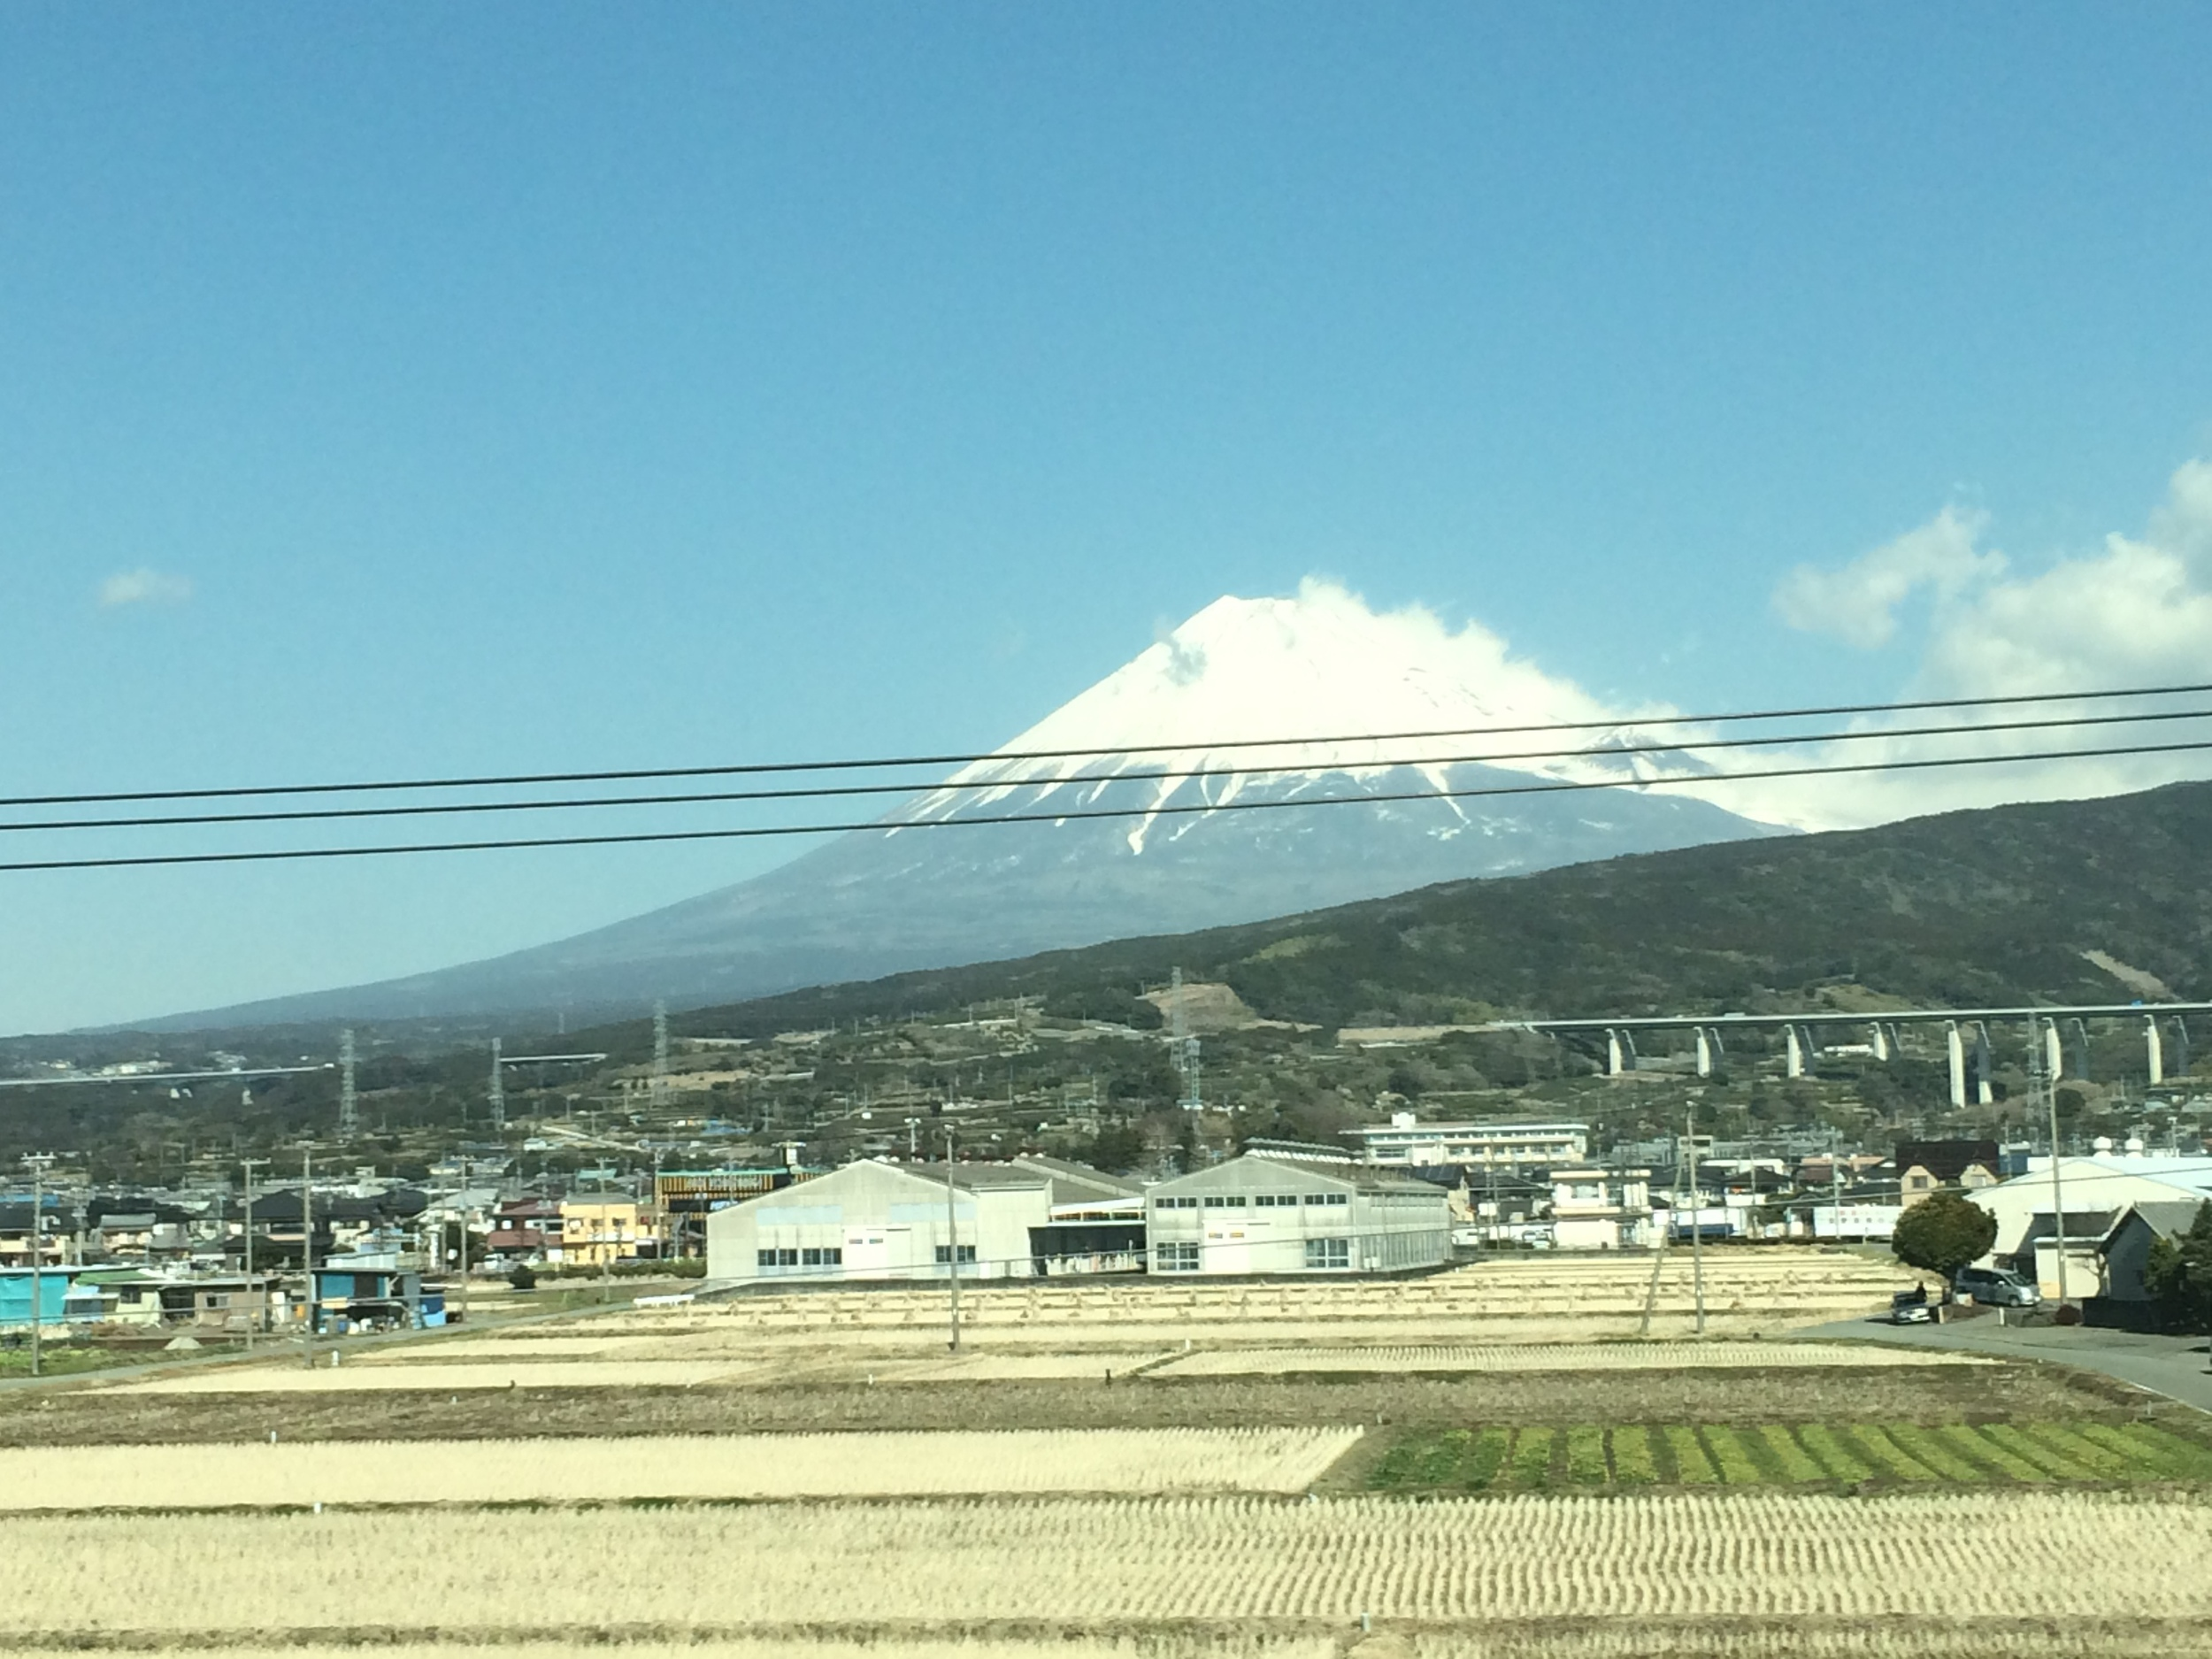 Mount Fuji from the bullet train.